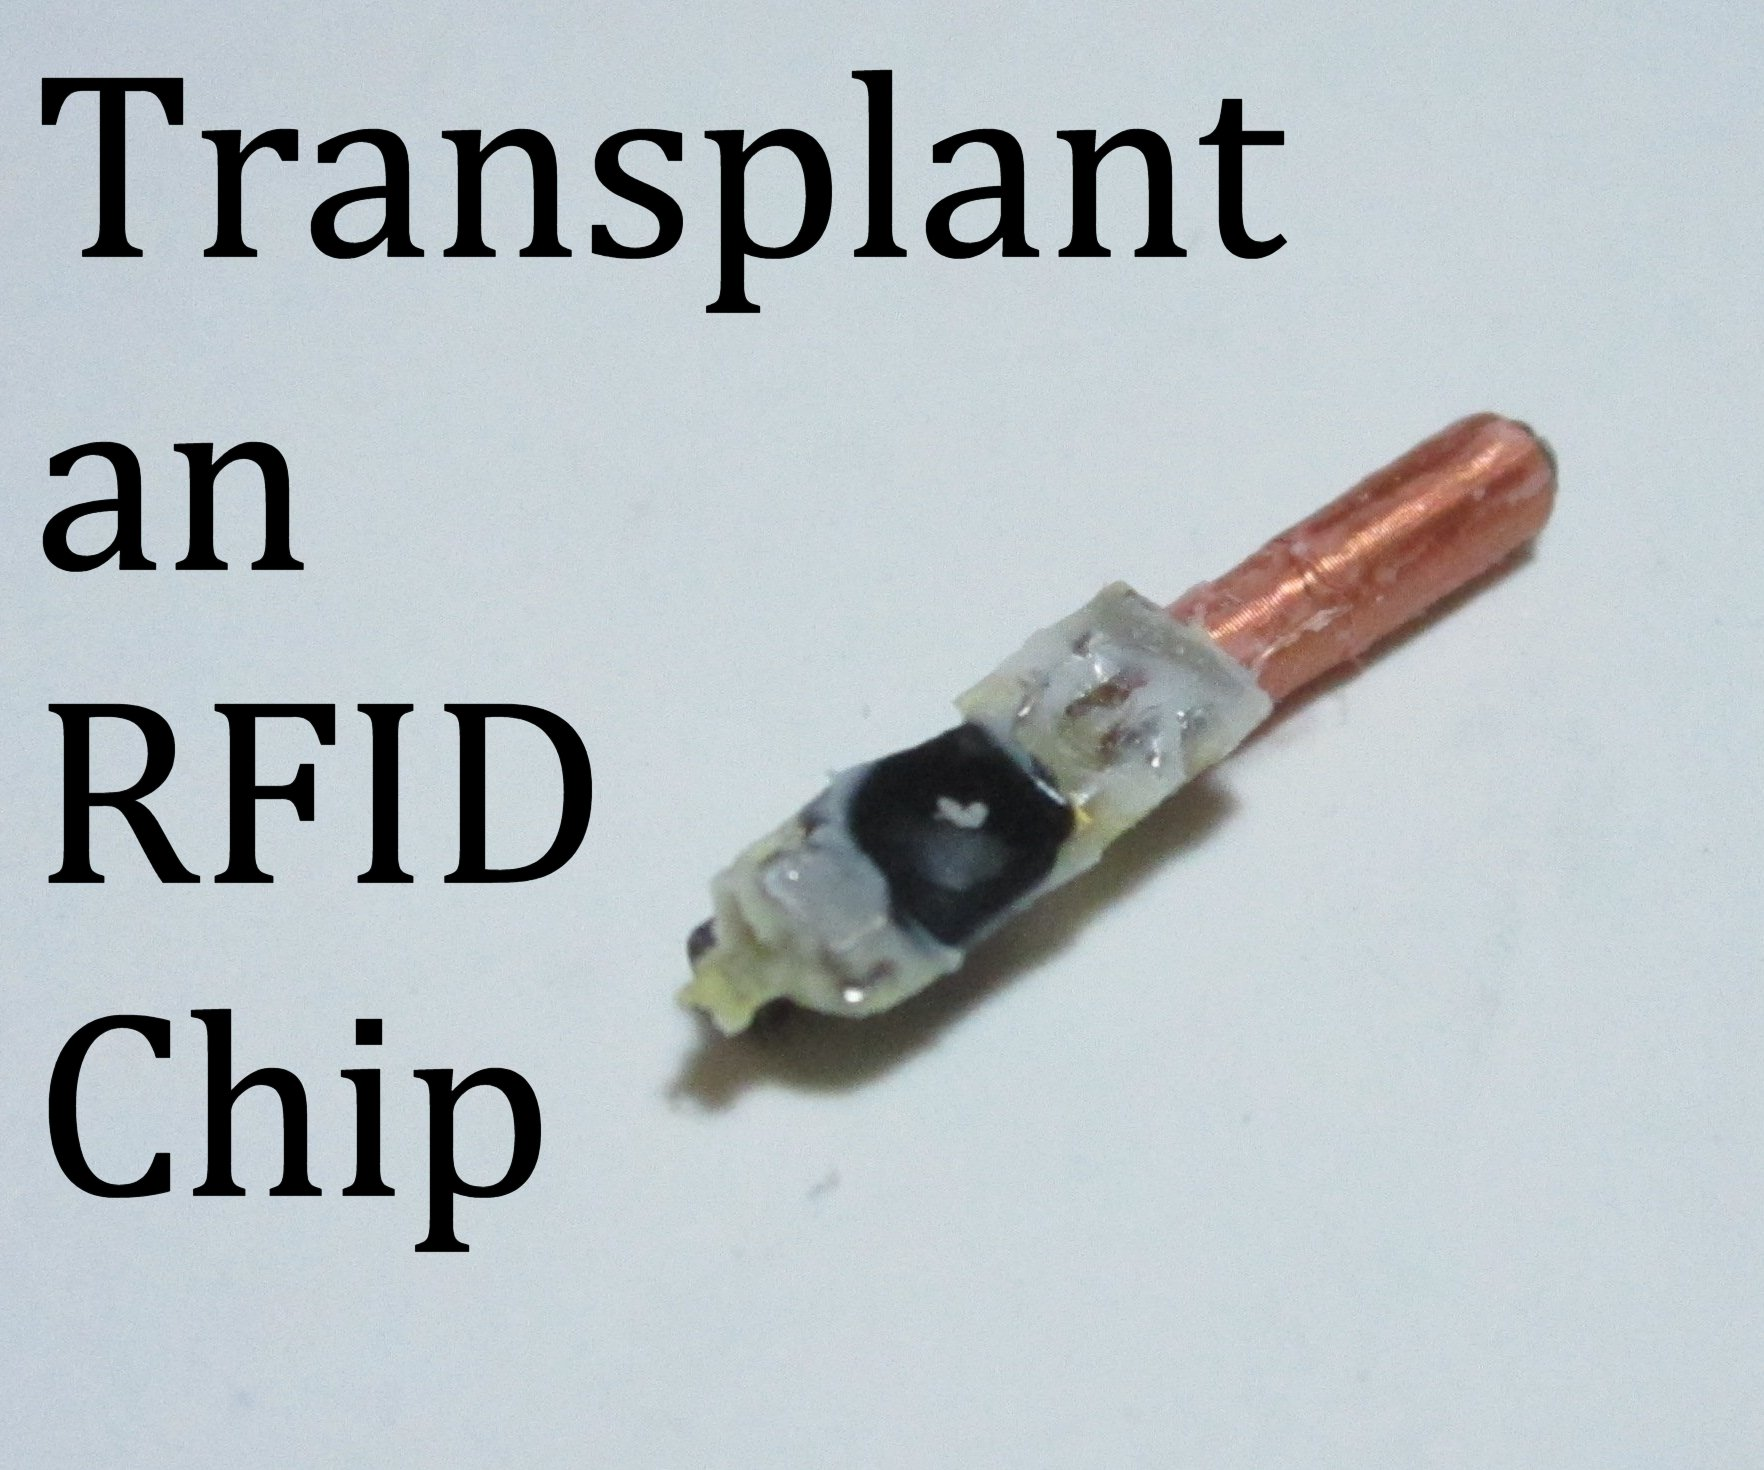 How to Transplant RFID Chips